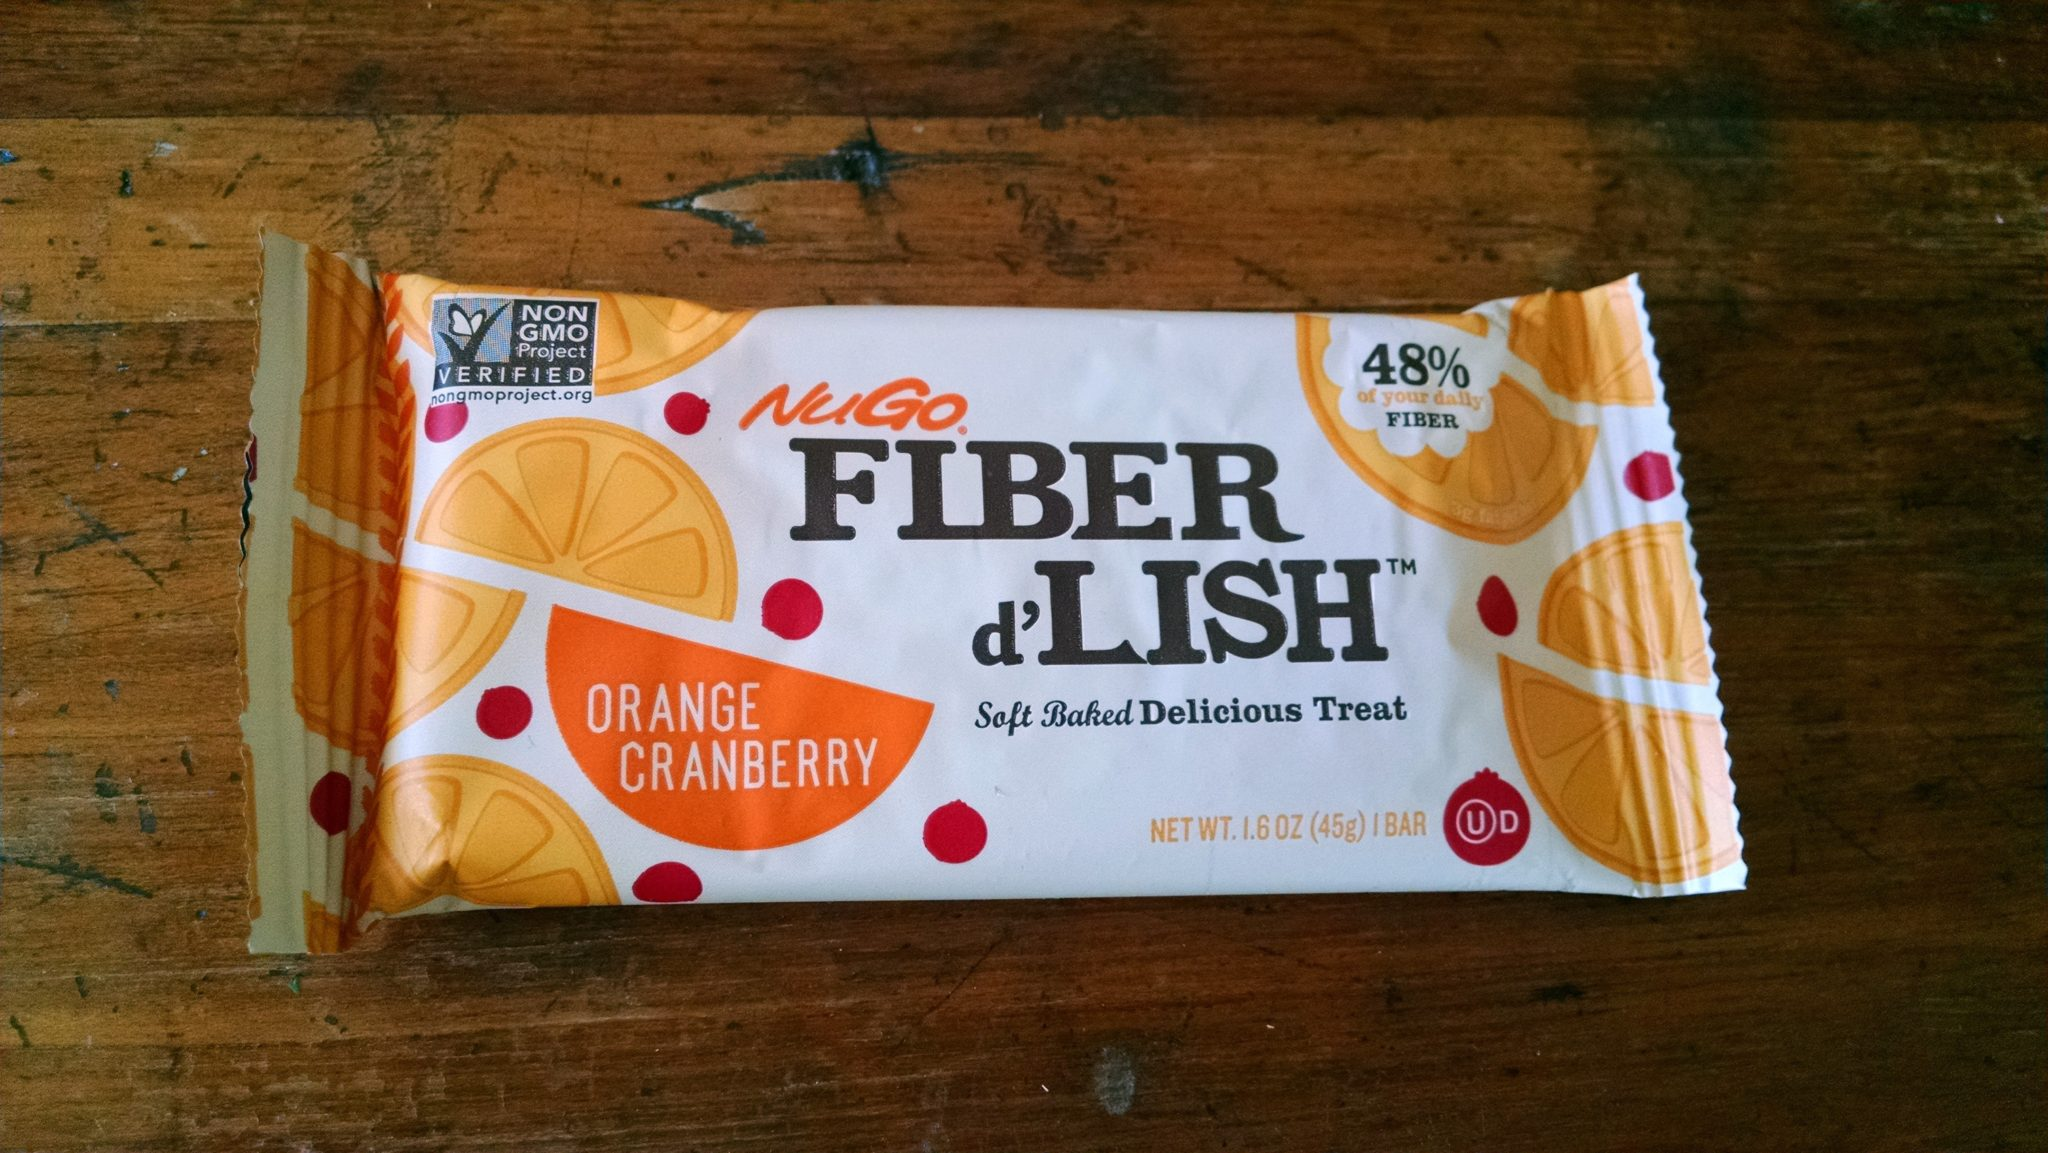 An In-Depth Review of Nugo Fiber D'Lish Fiber Bars